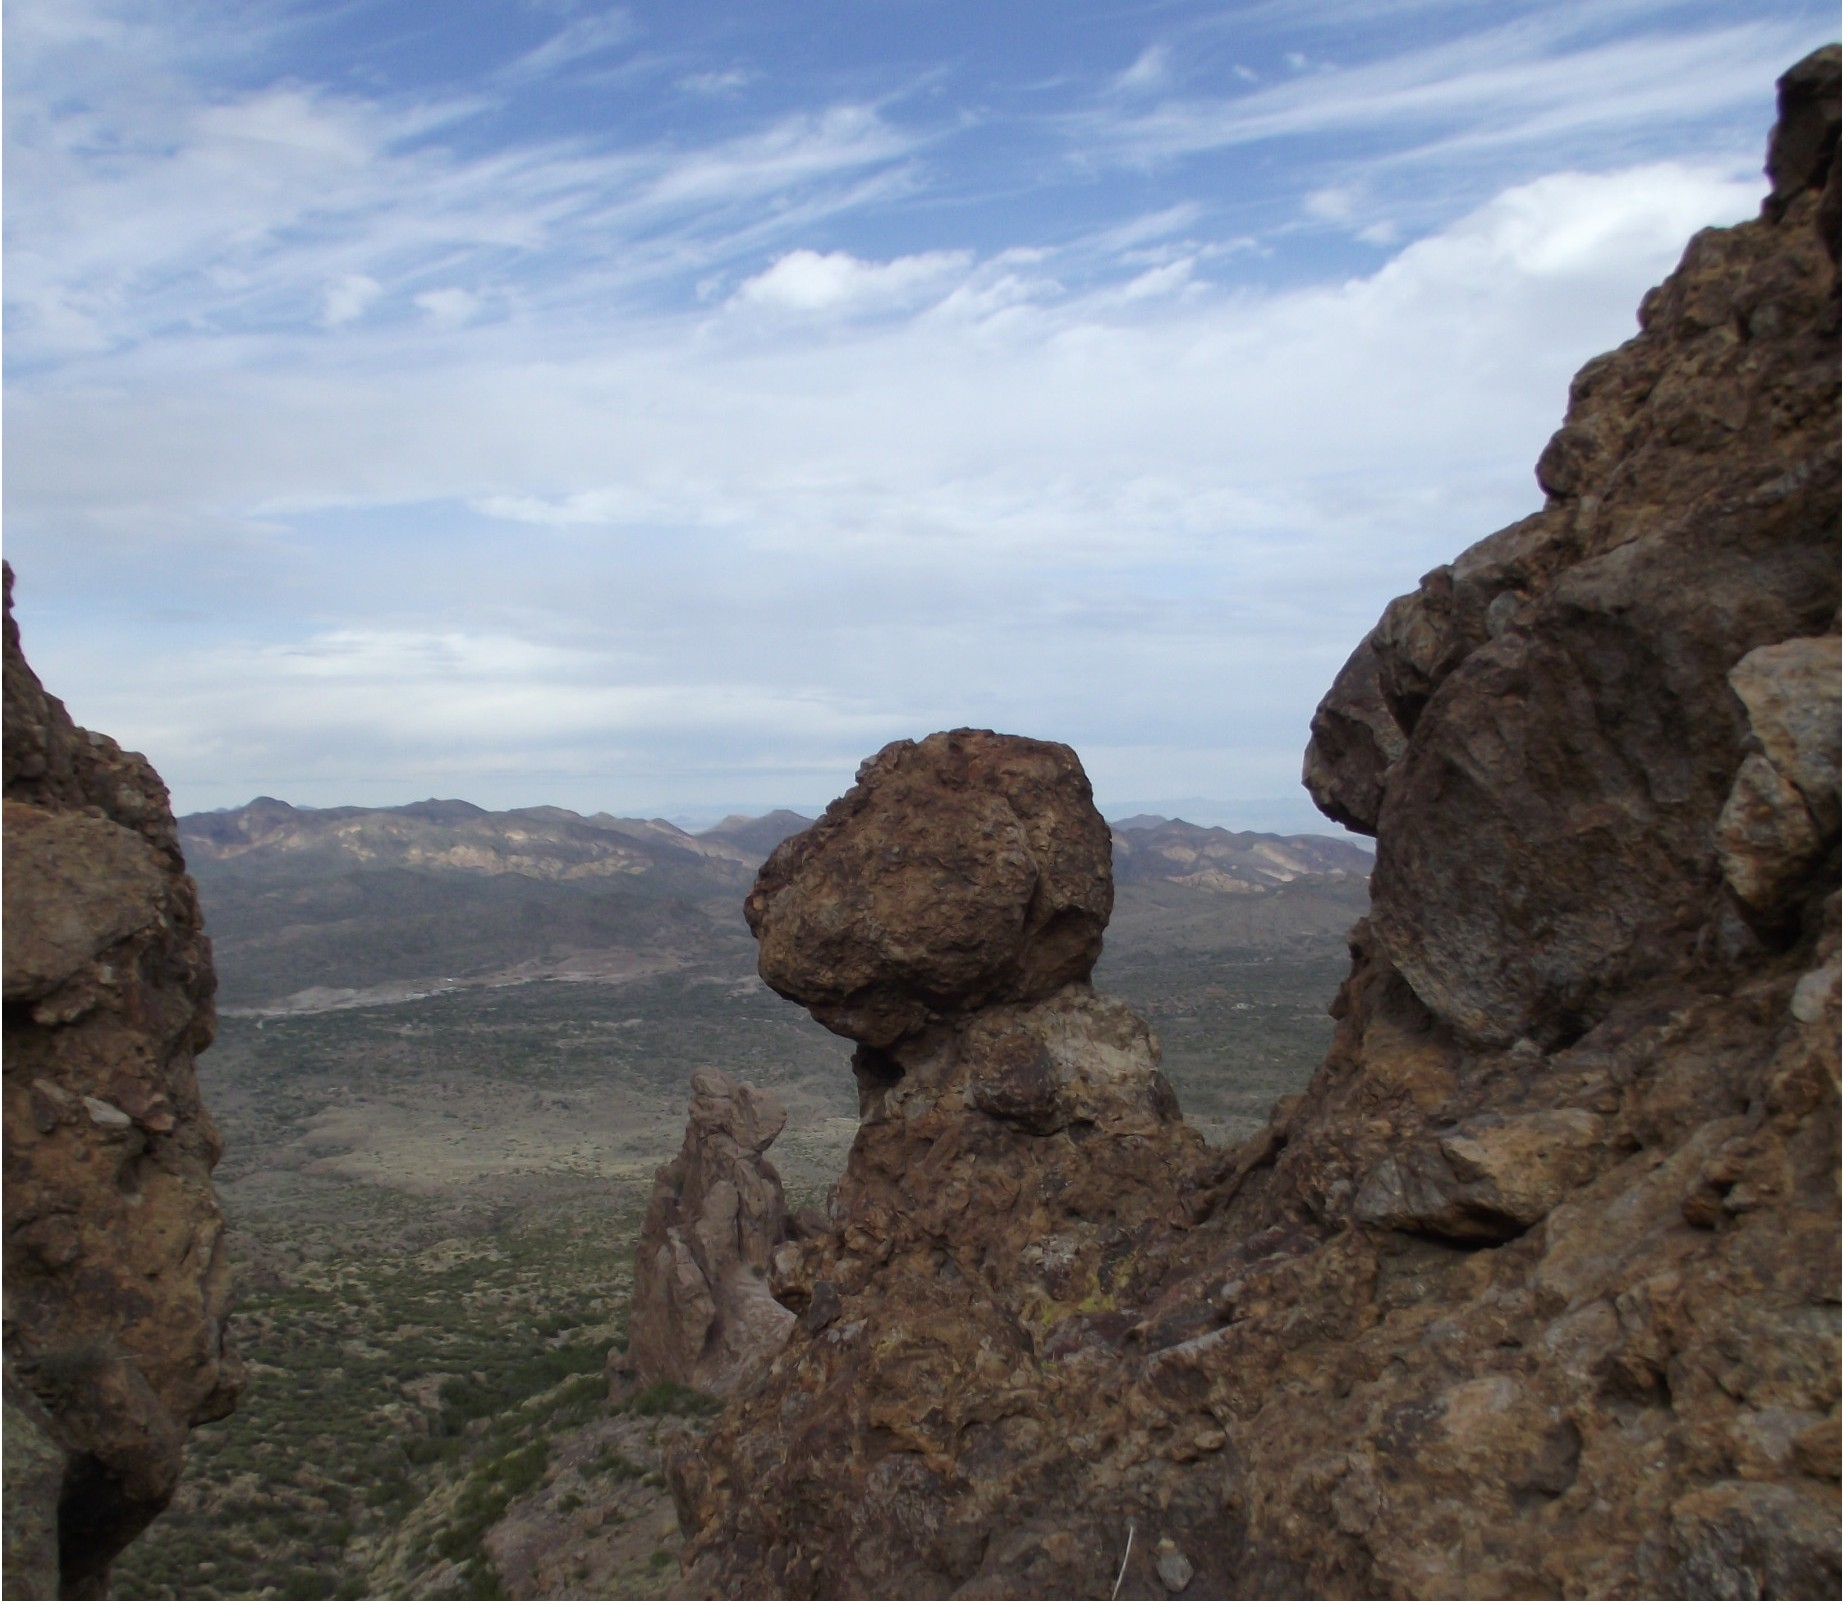 The Superstitions near Lost Dutchman. Photo by Russell S. Braman